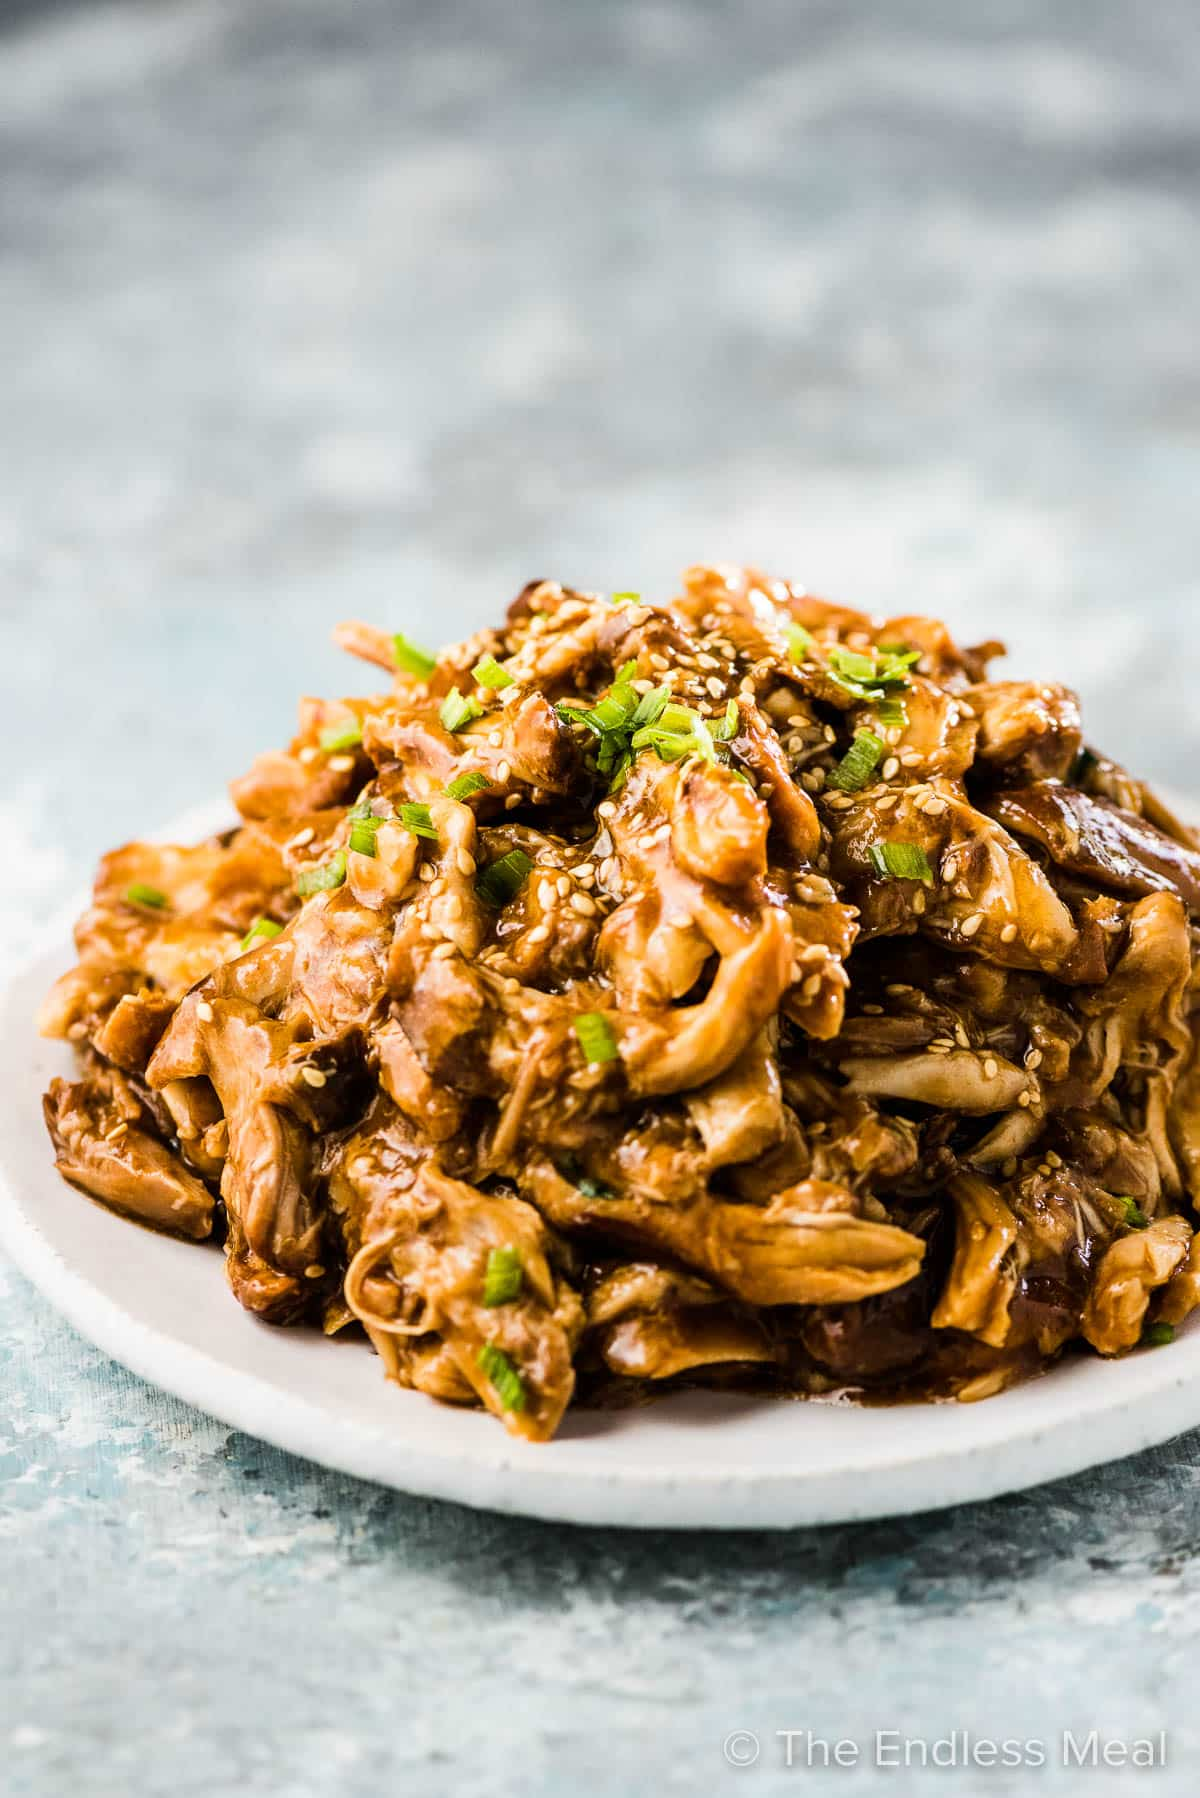 Shredded honey garlic chicken piled high on a plate.